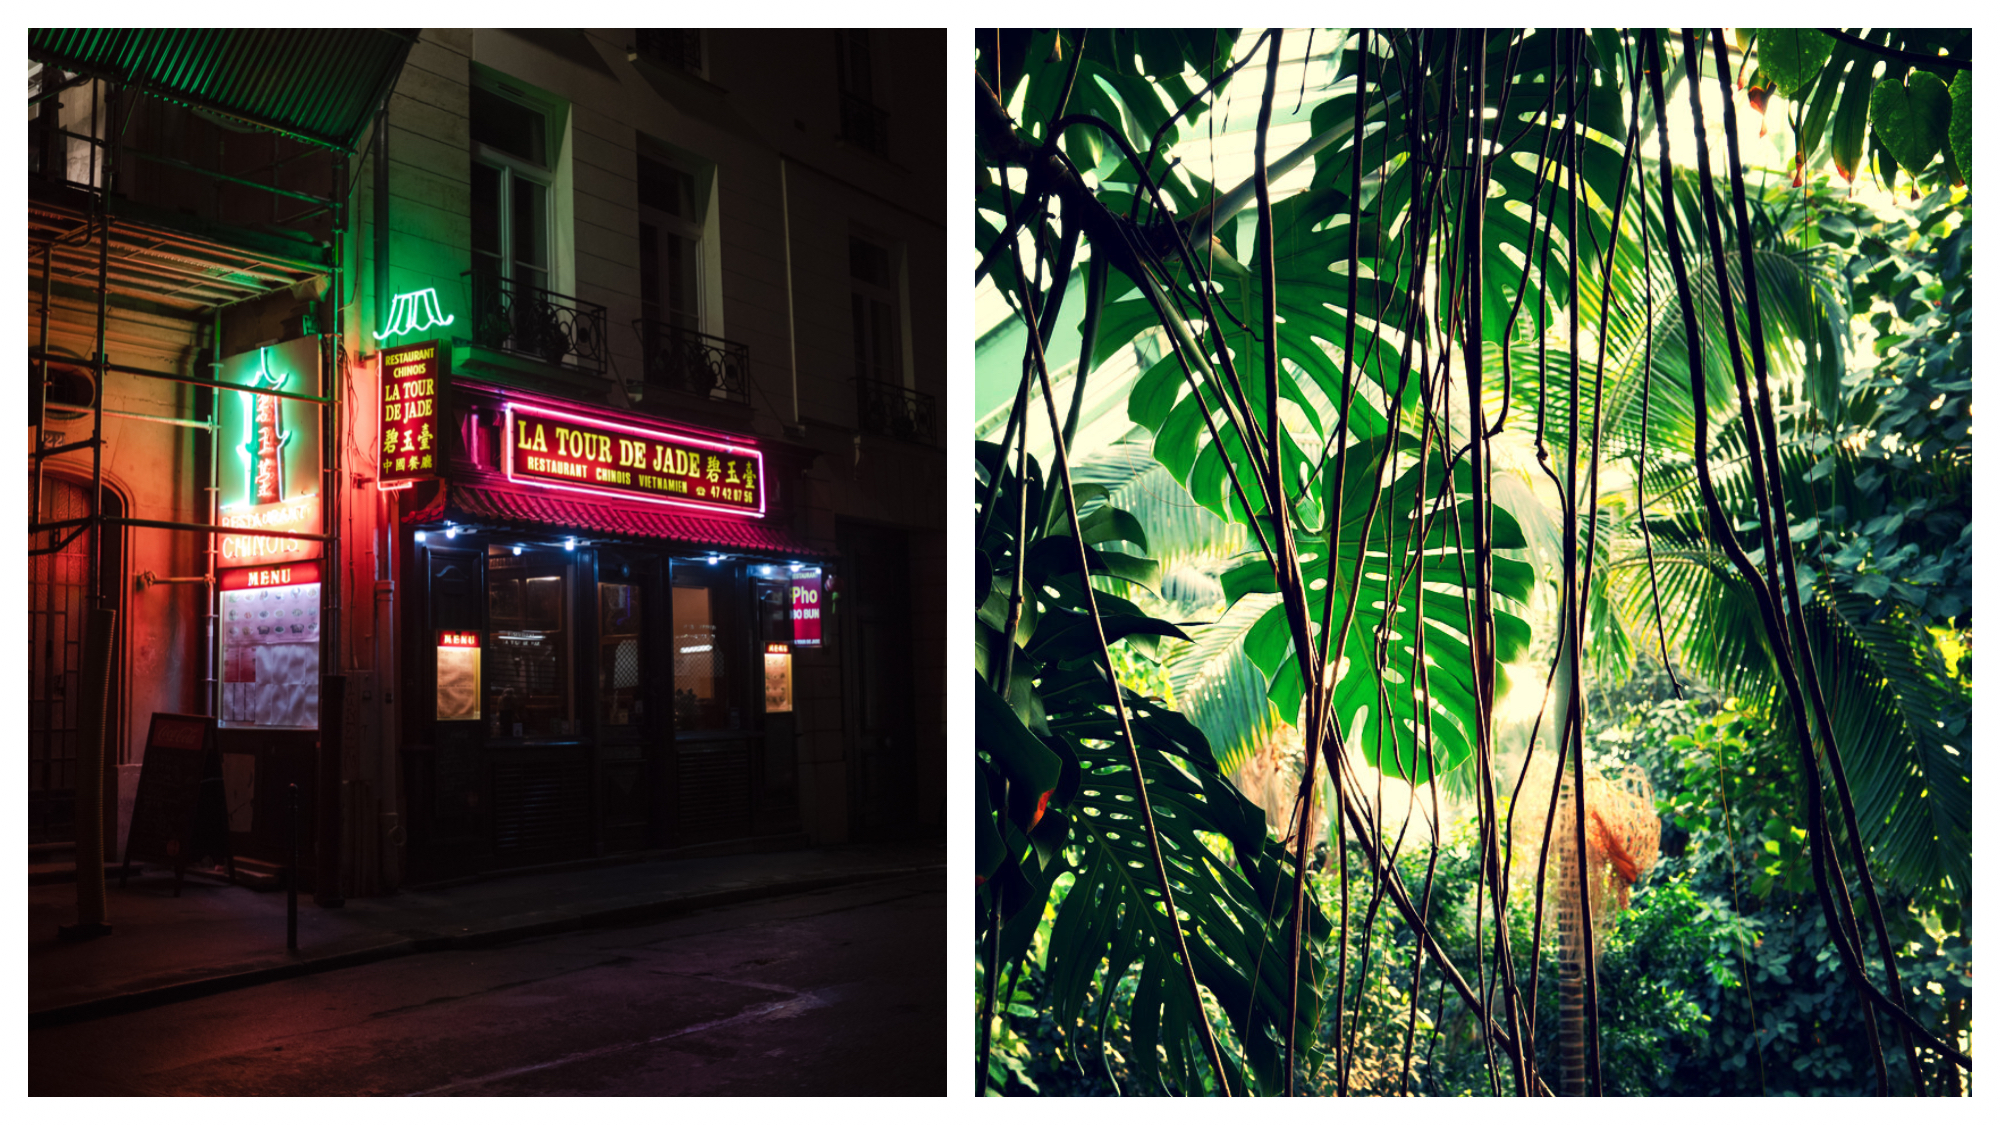 """Left: Neon signs from the restaurant """"La Tour de Jade"""" shine bright in the night in Paris' Chinatown, Right: Sun shines from above and illuminates the colors of the plants in the greenhouse of the Jardin de Plantes in Paris"""